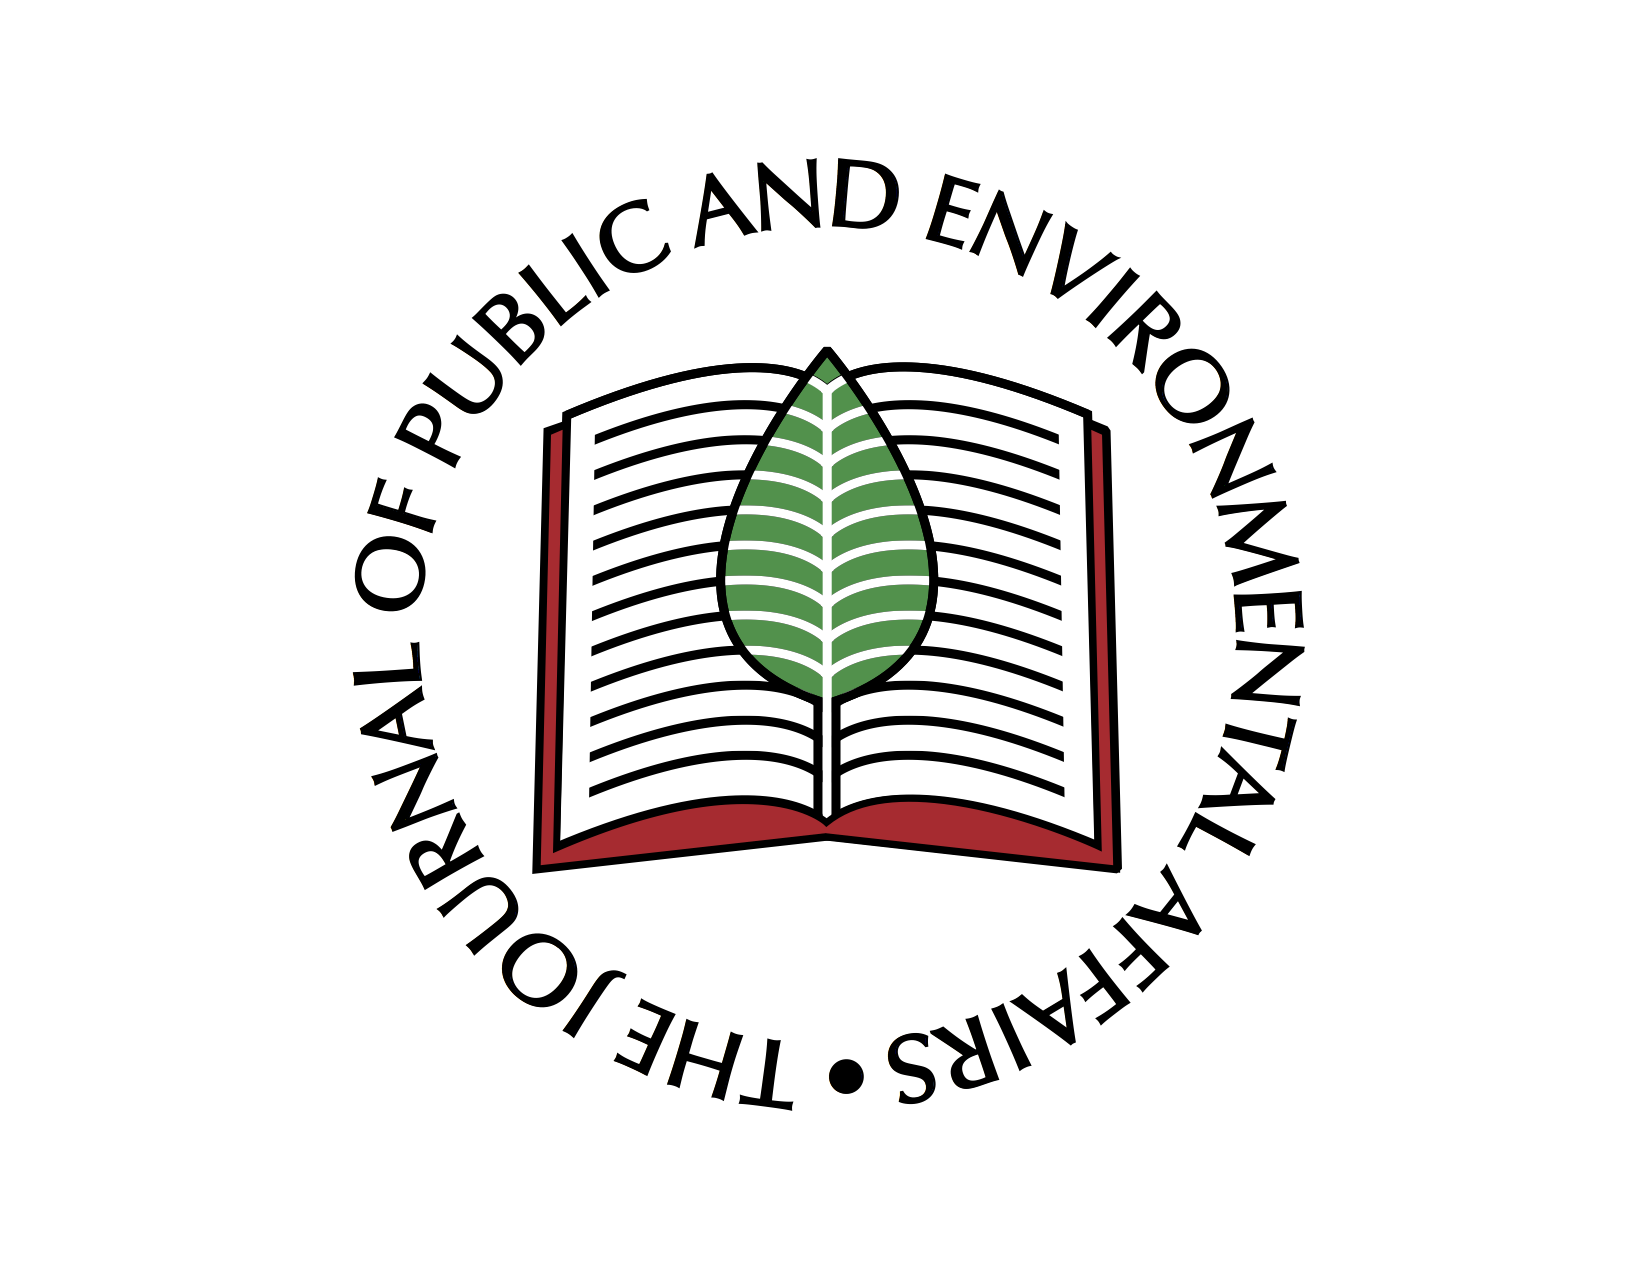 logo for Journal of Public and Environmental Affairs